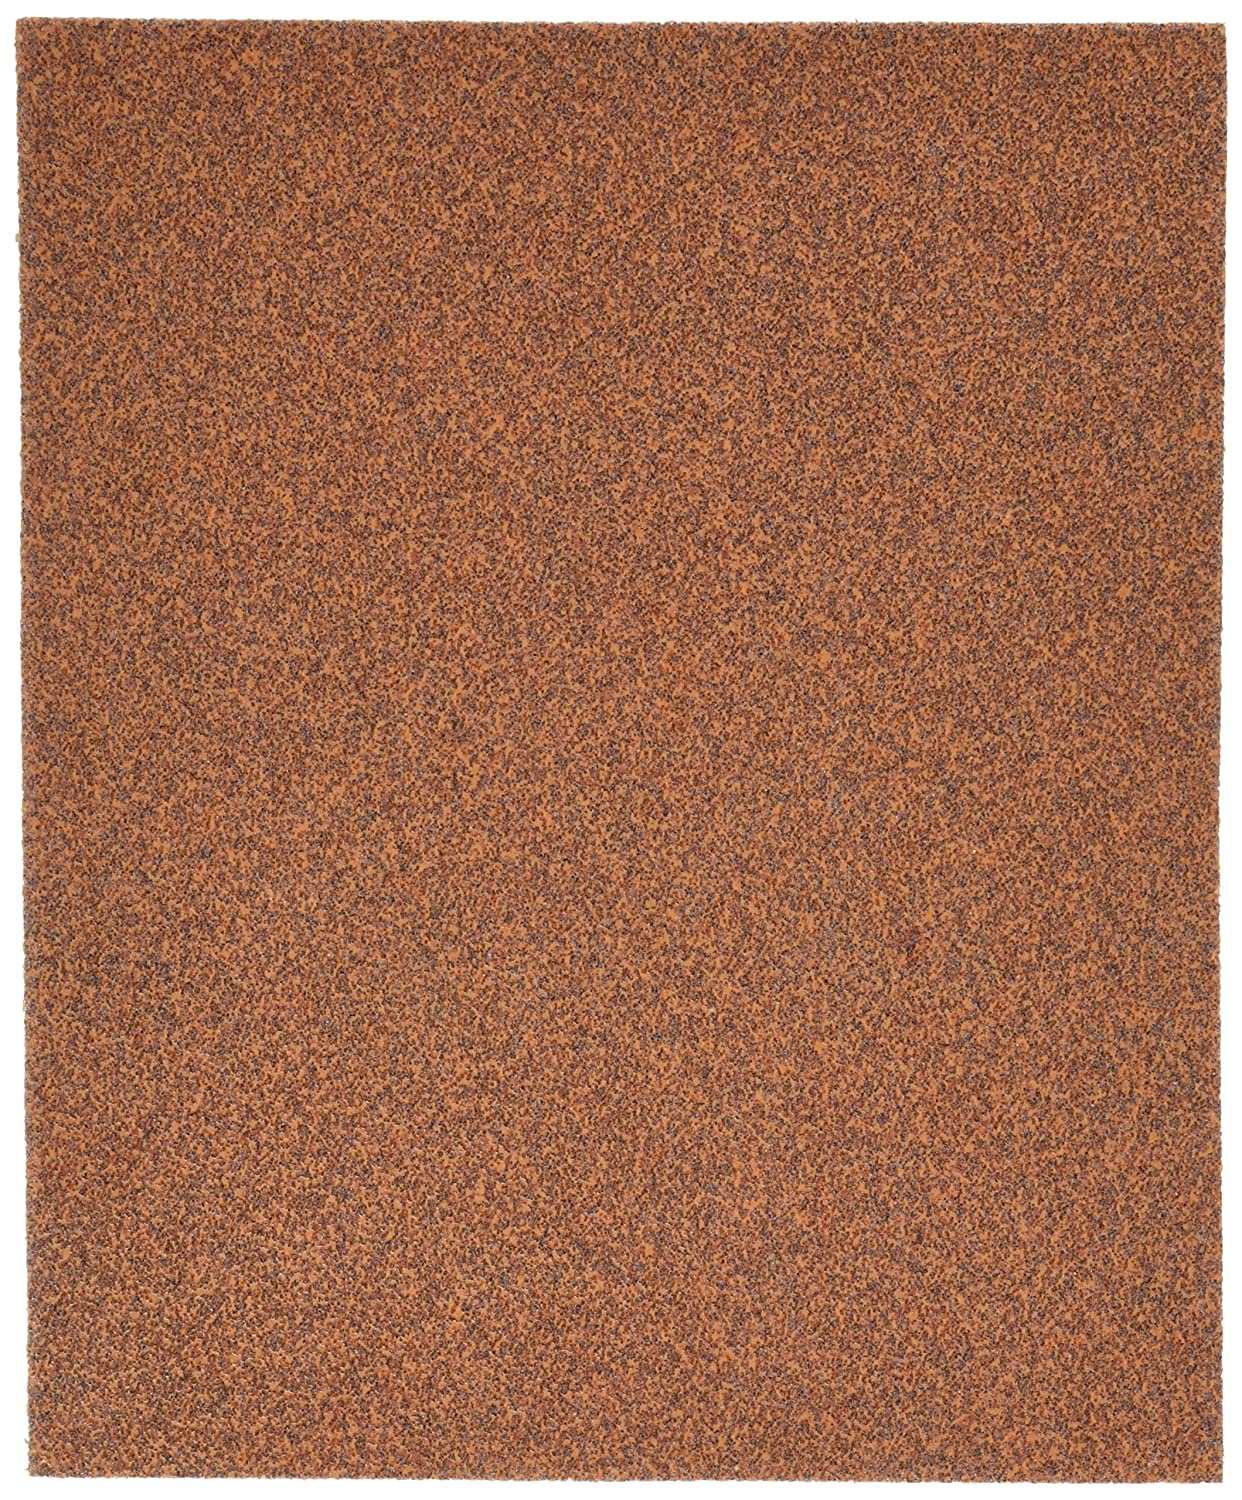 1//4 x 18 A CRS 18 Length 1//4 x 18 A CRS 0.25 Width 18 Length 3M Other Backing Scotch-Brite 13290 Surface Conditioning Belt Pack of 20 0.25 Width Pack of 20 Aluminum Oxide Abrasive Grit